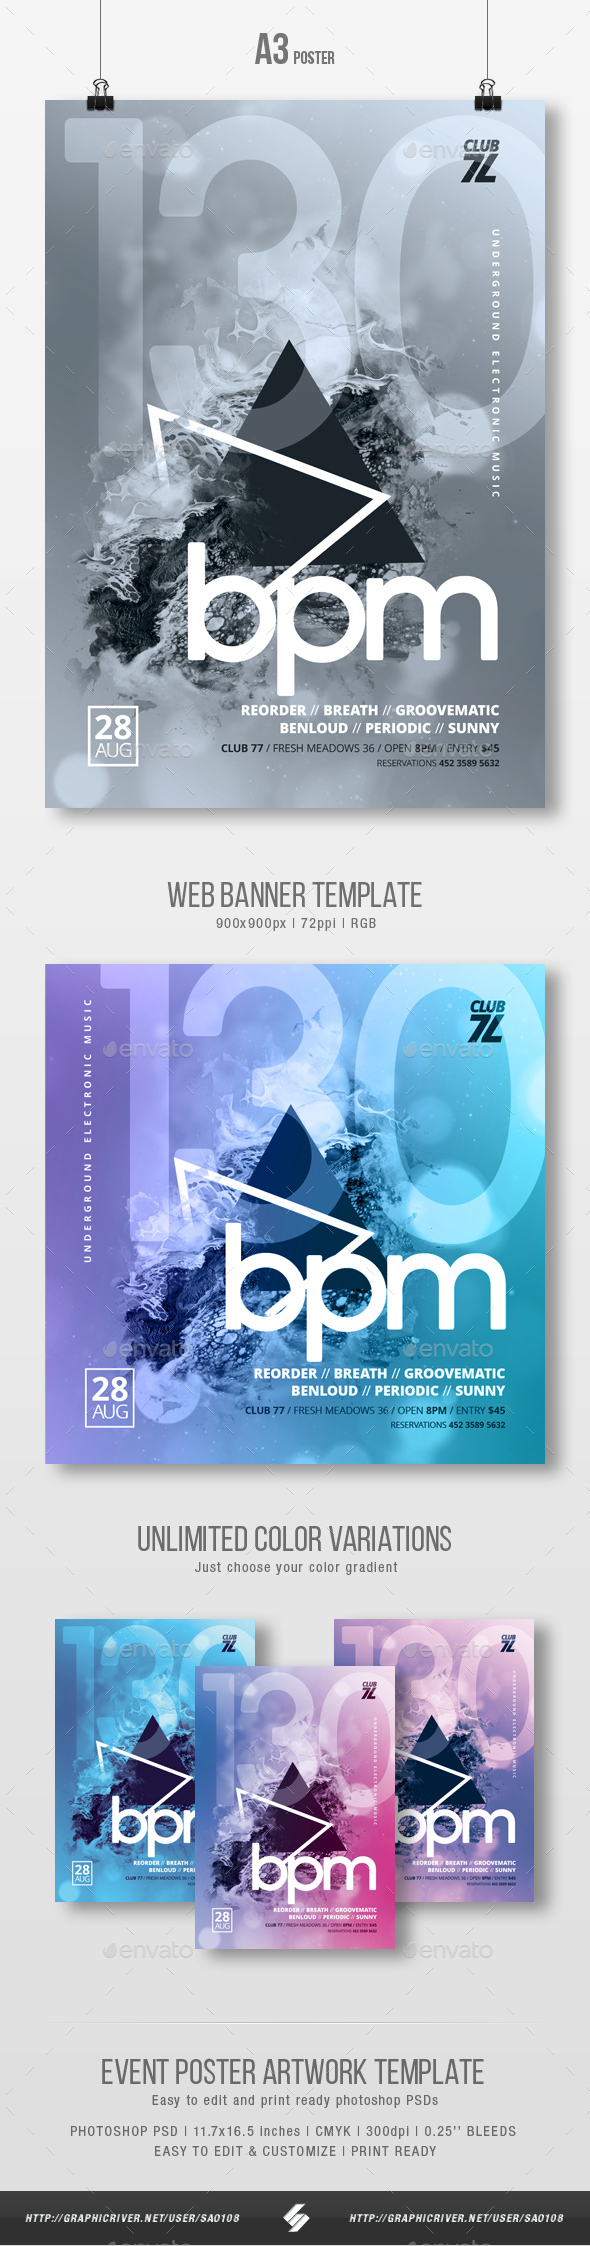 130 bpm - Abstract Party Flyer / Poster Template A3 - Clubs & Parties Events